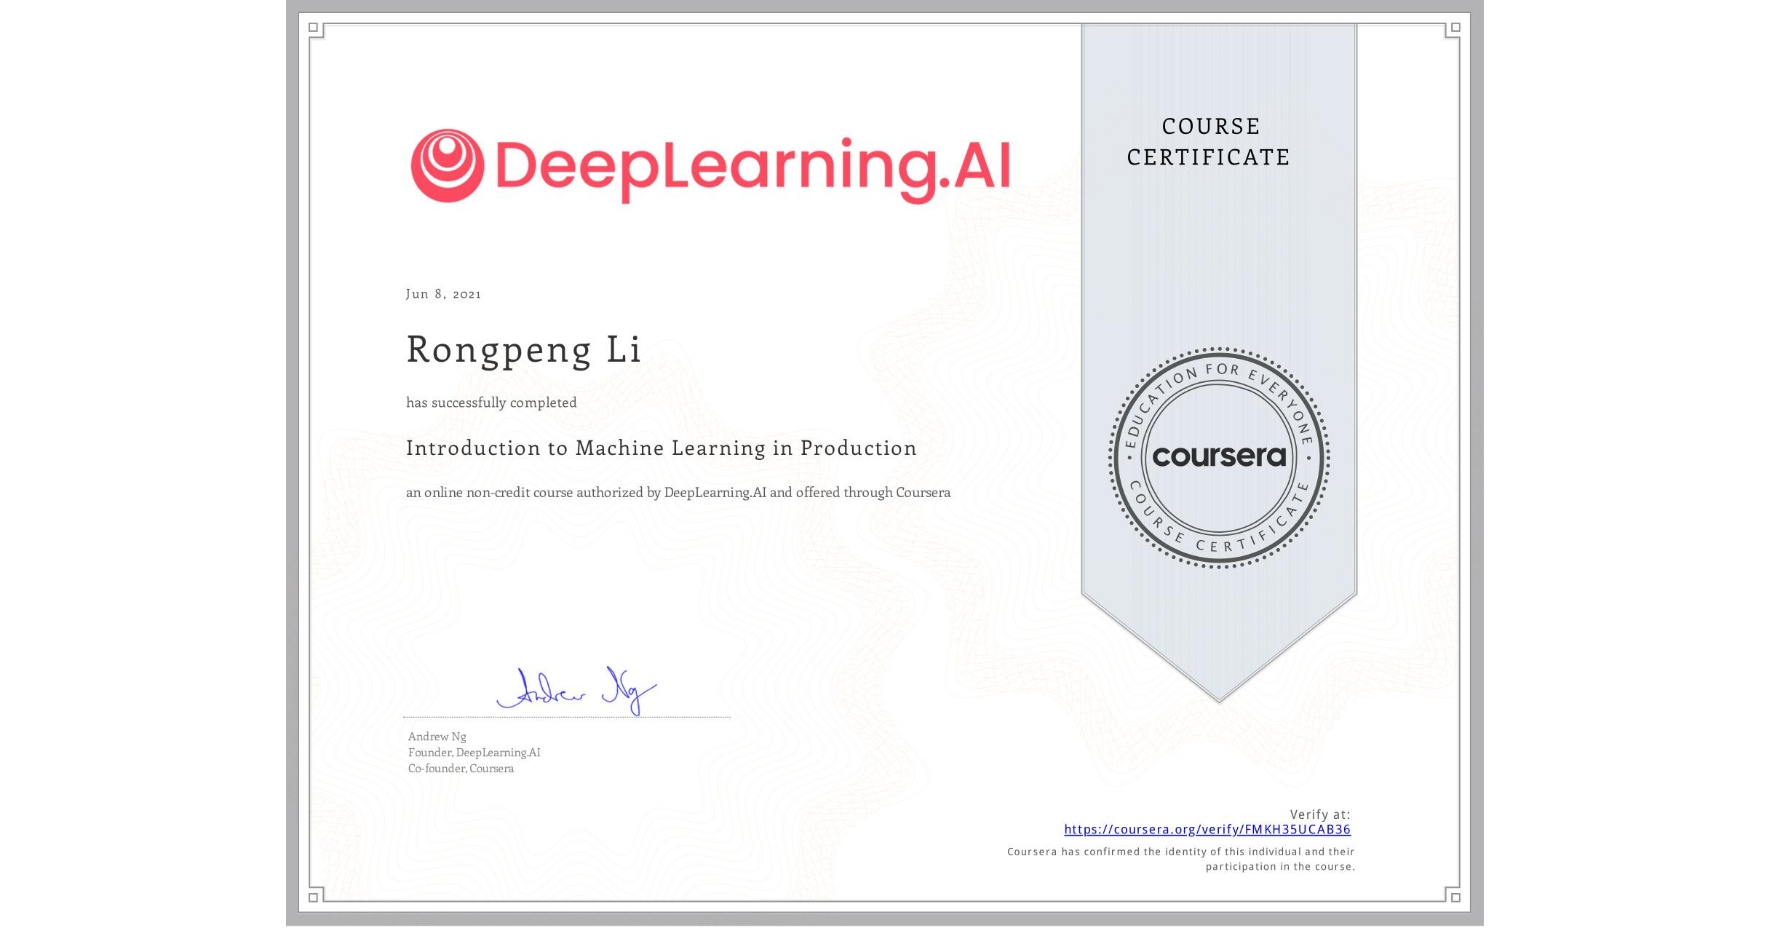 View certificate for Rongpeng Li, Introduction to Machine Learning in Production, an online non-credit course authorized by DeepLearning.AI and offered through Coursera